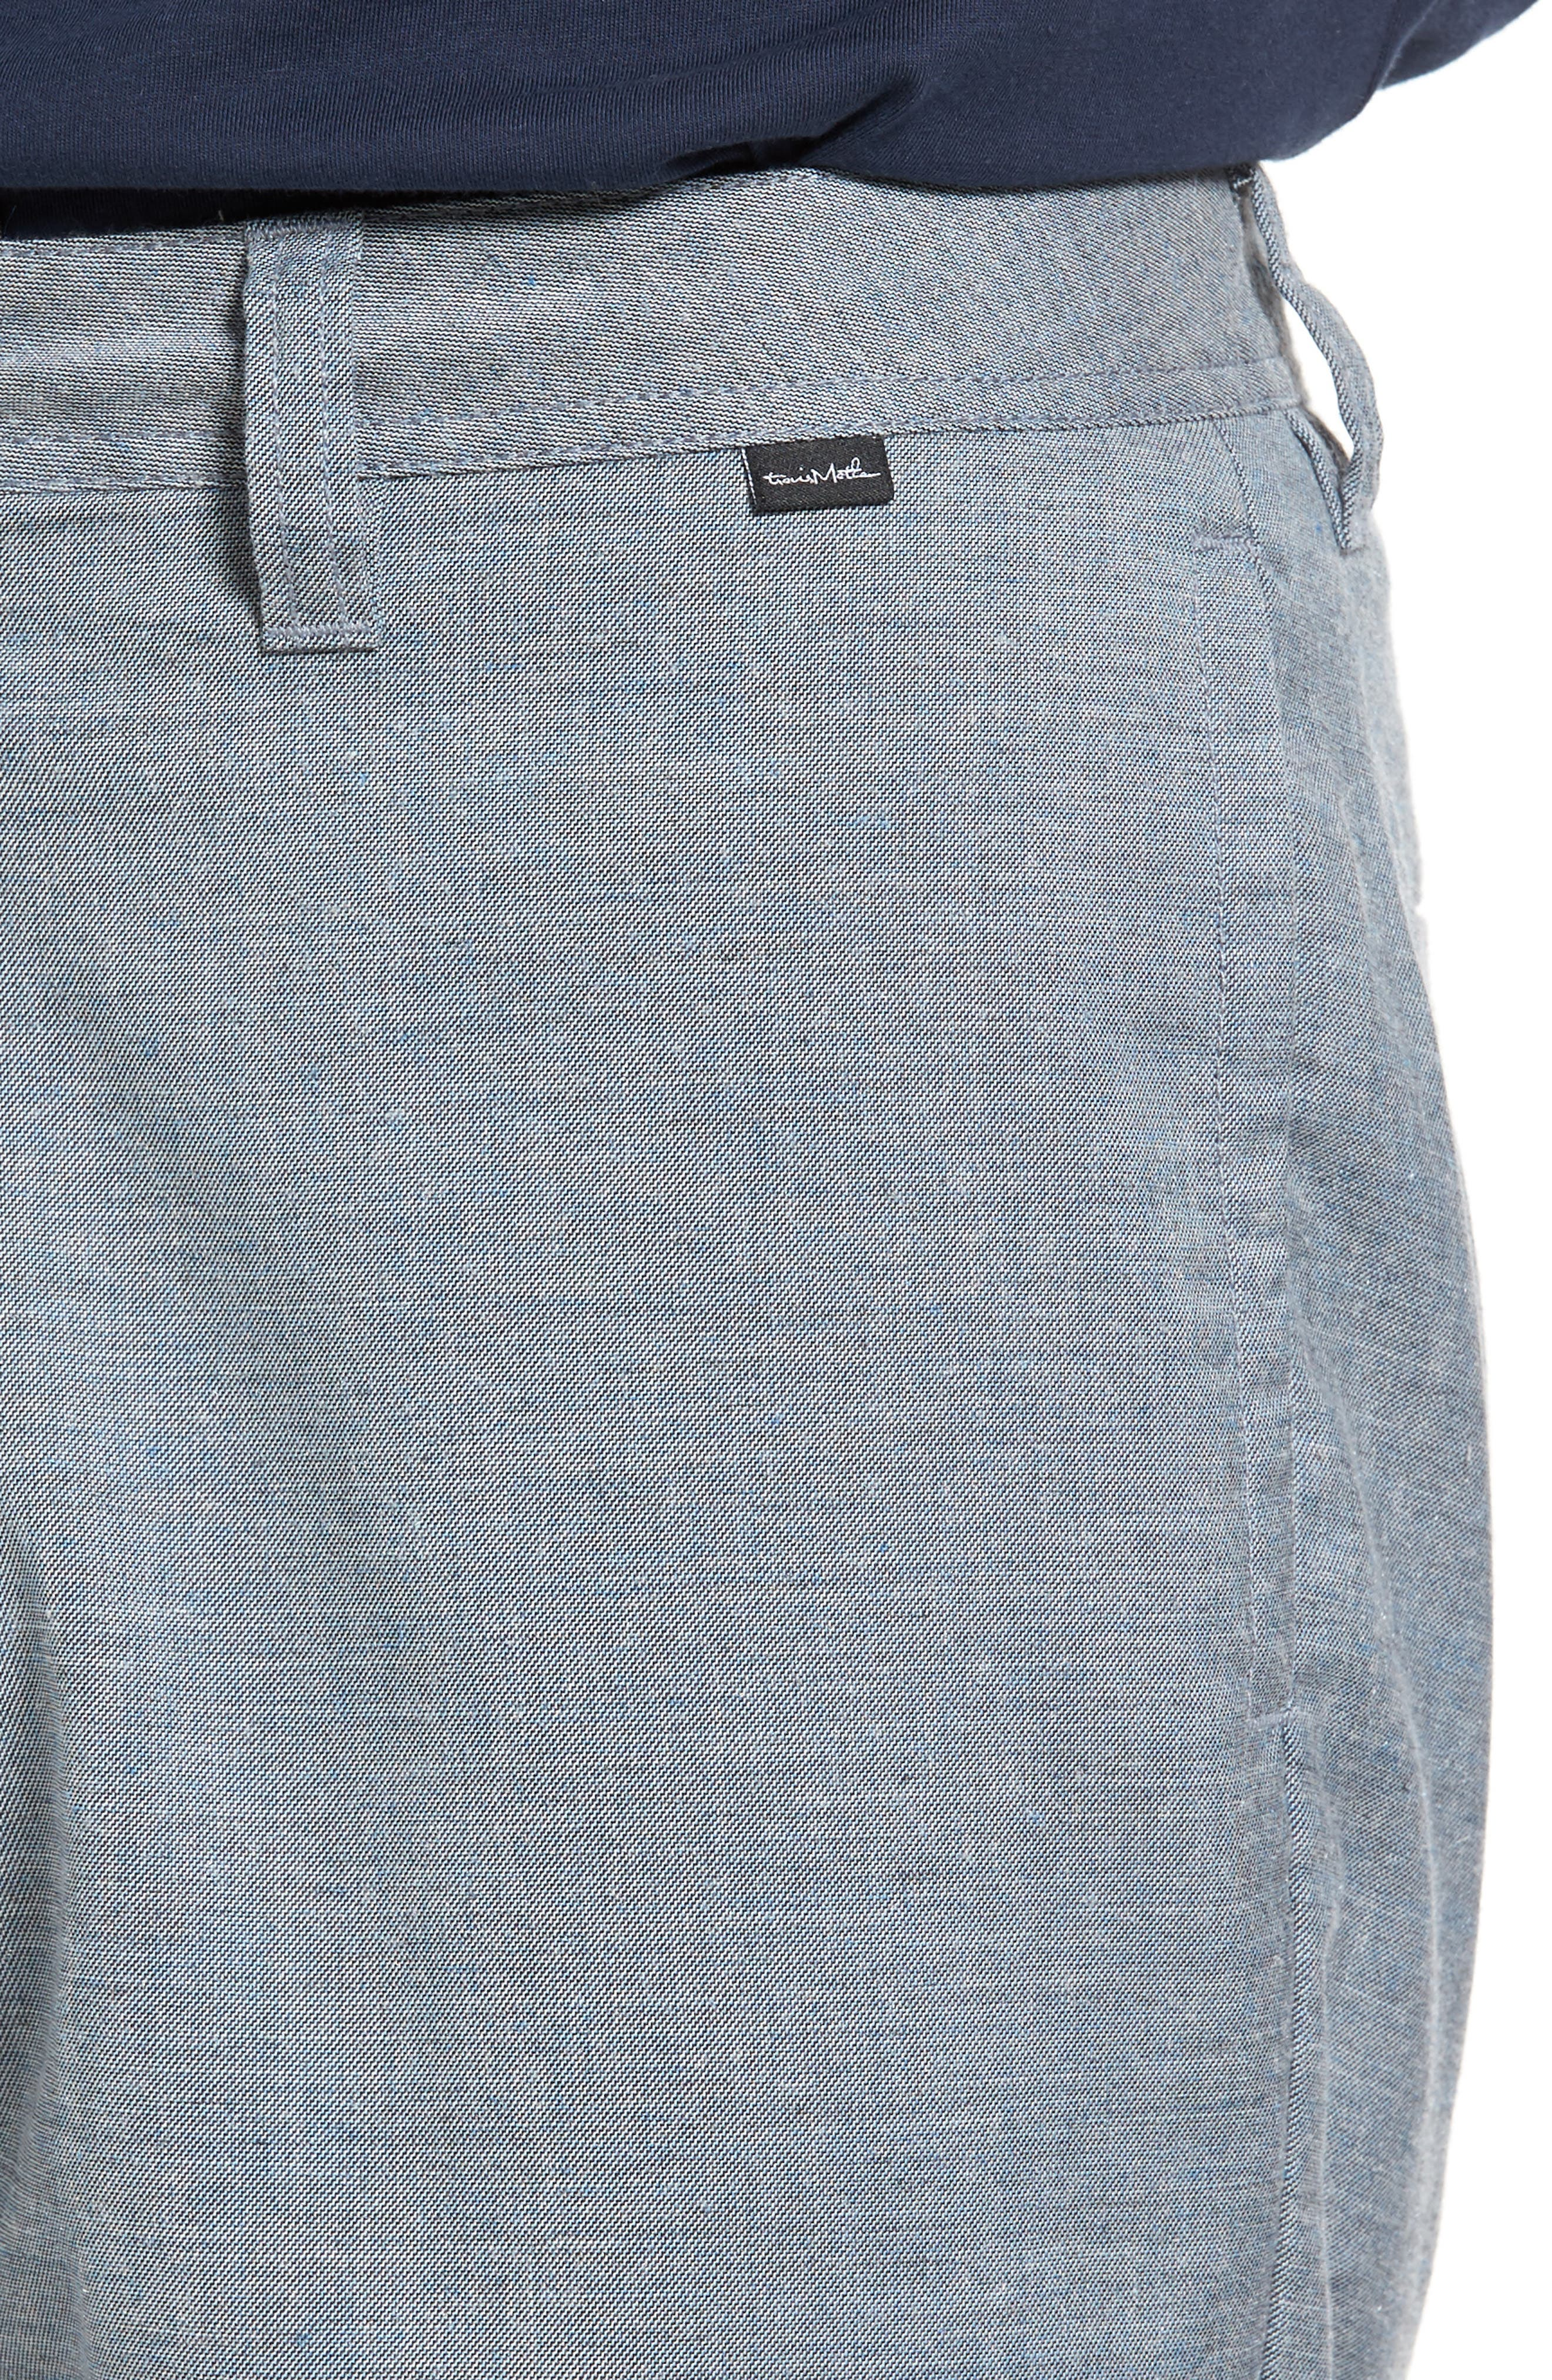 Romers Stretch Shorts,                             Alternate thumbnail 4, color,                             020